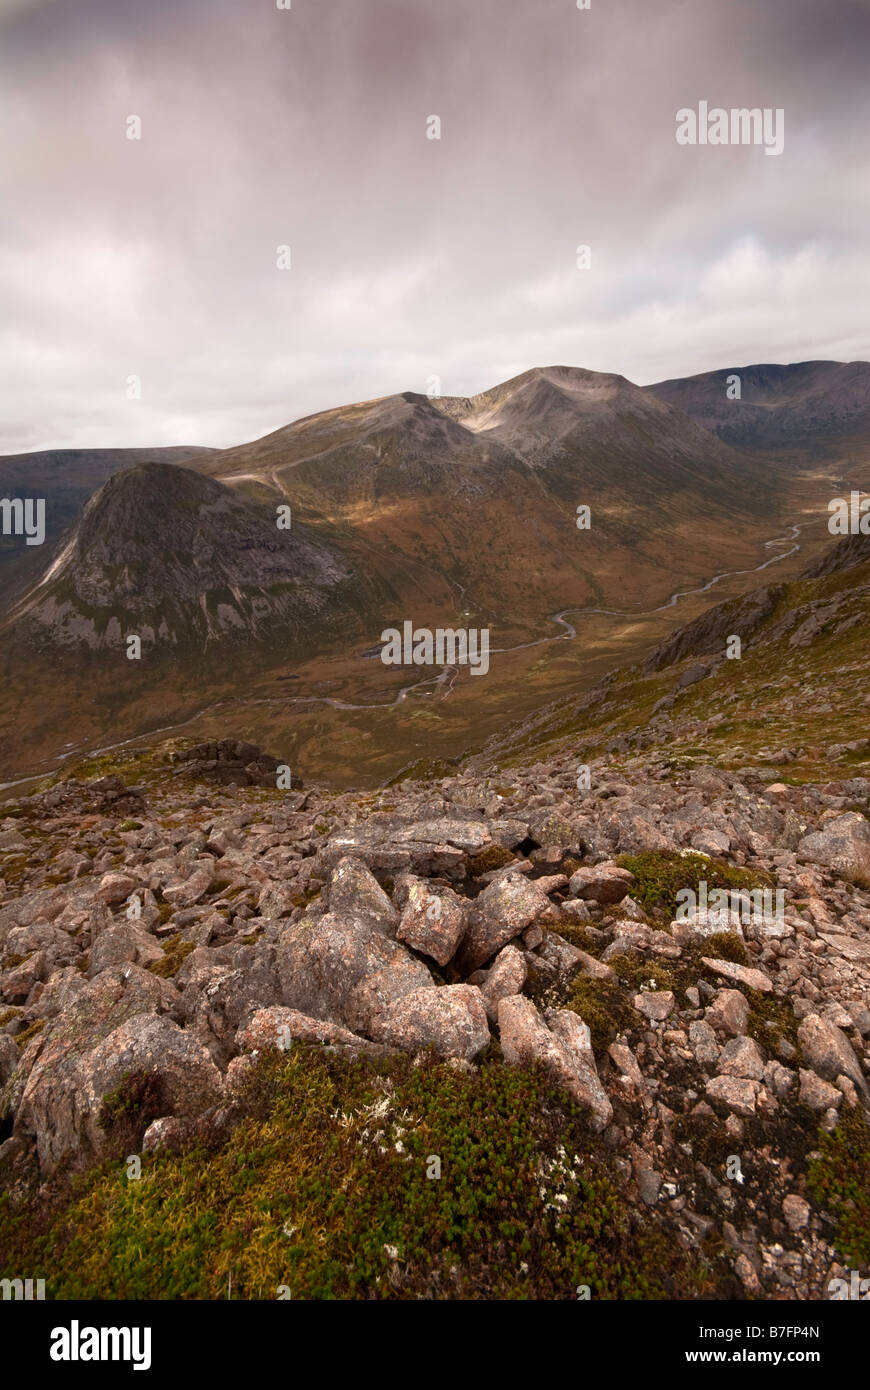 A view from Carn a Mhaim ,across the pass named the Laraig Ghru, towards the Devils Point, Cairn Toul and the Angels - Stock Image